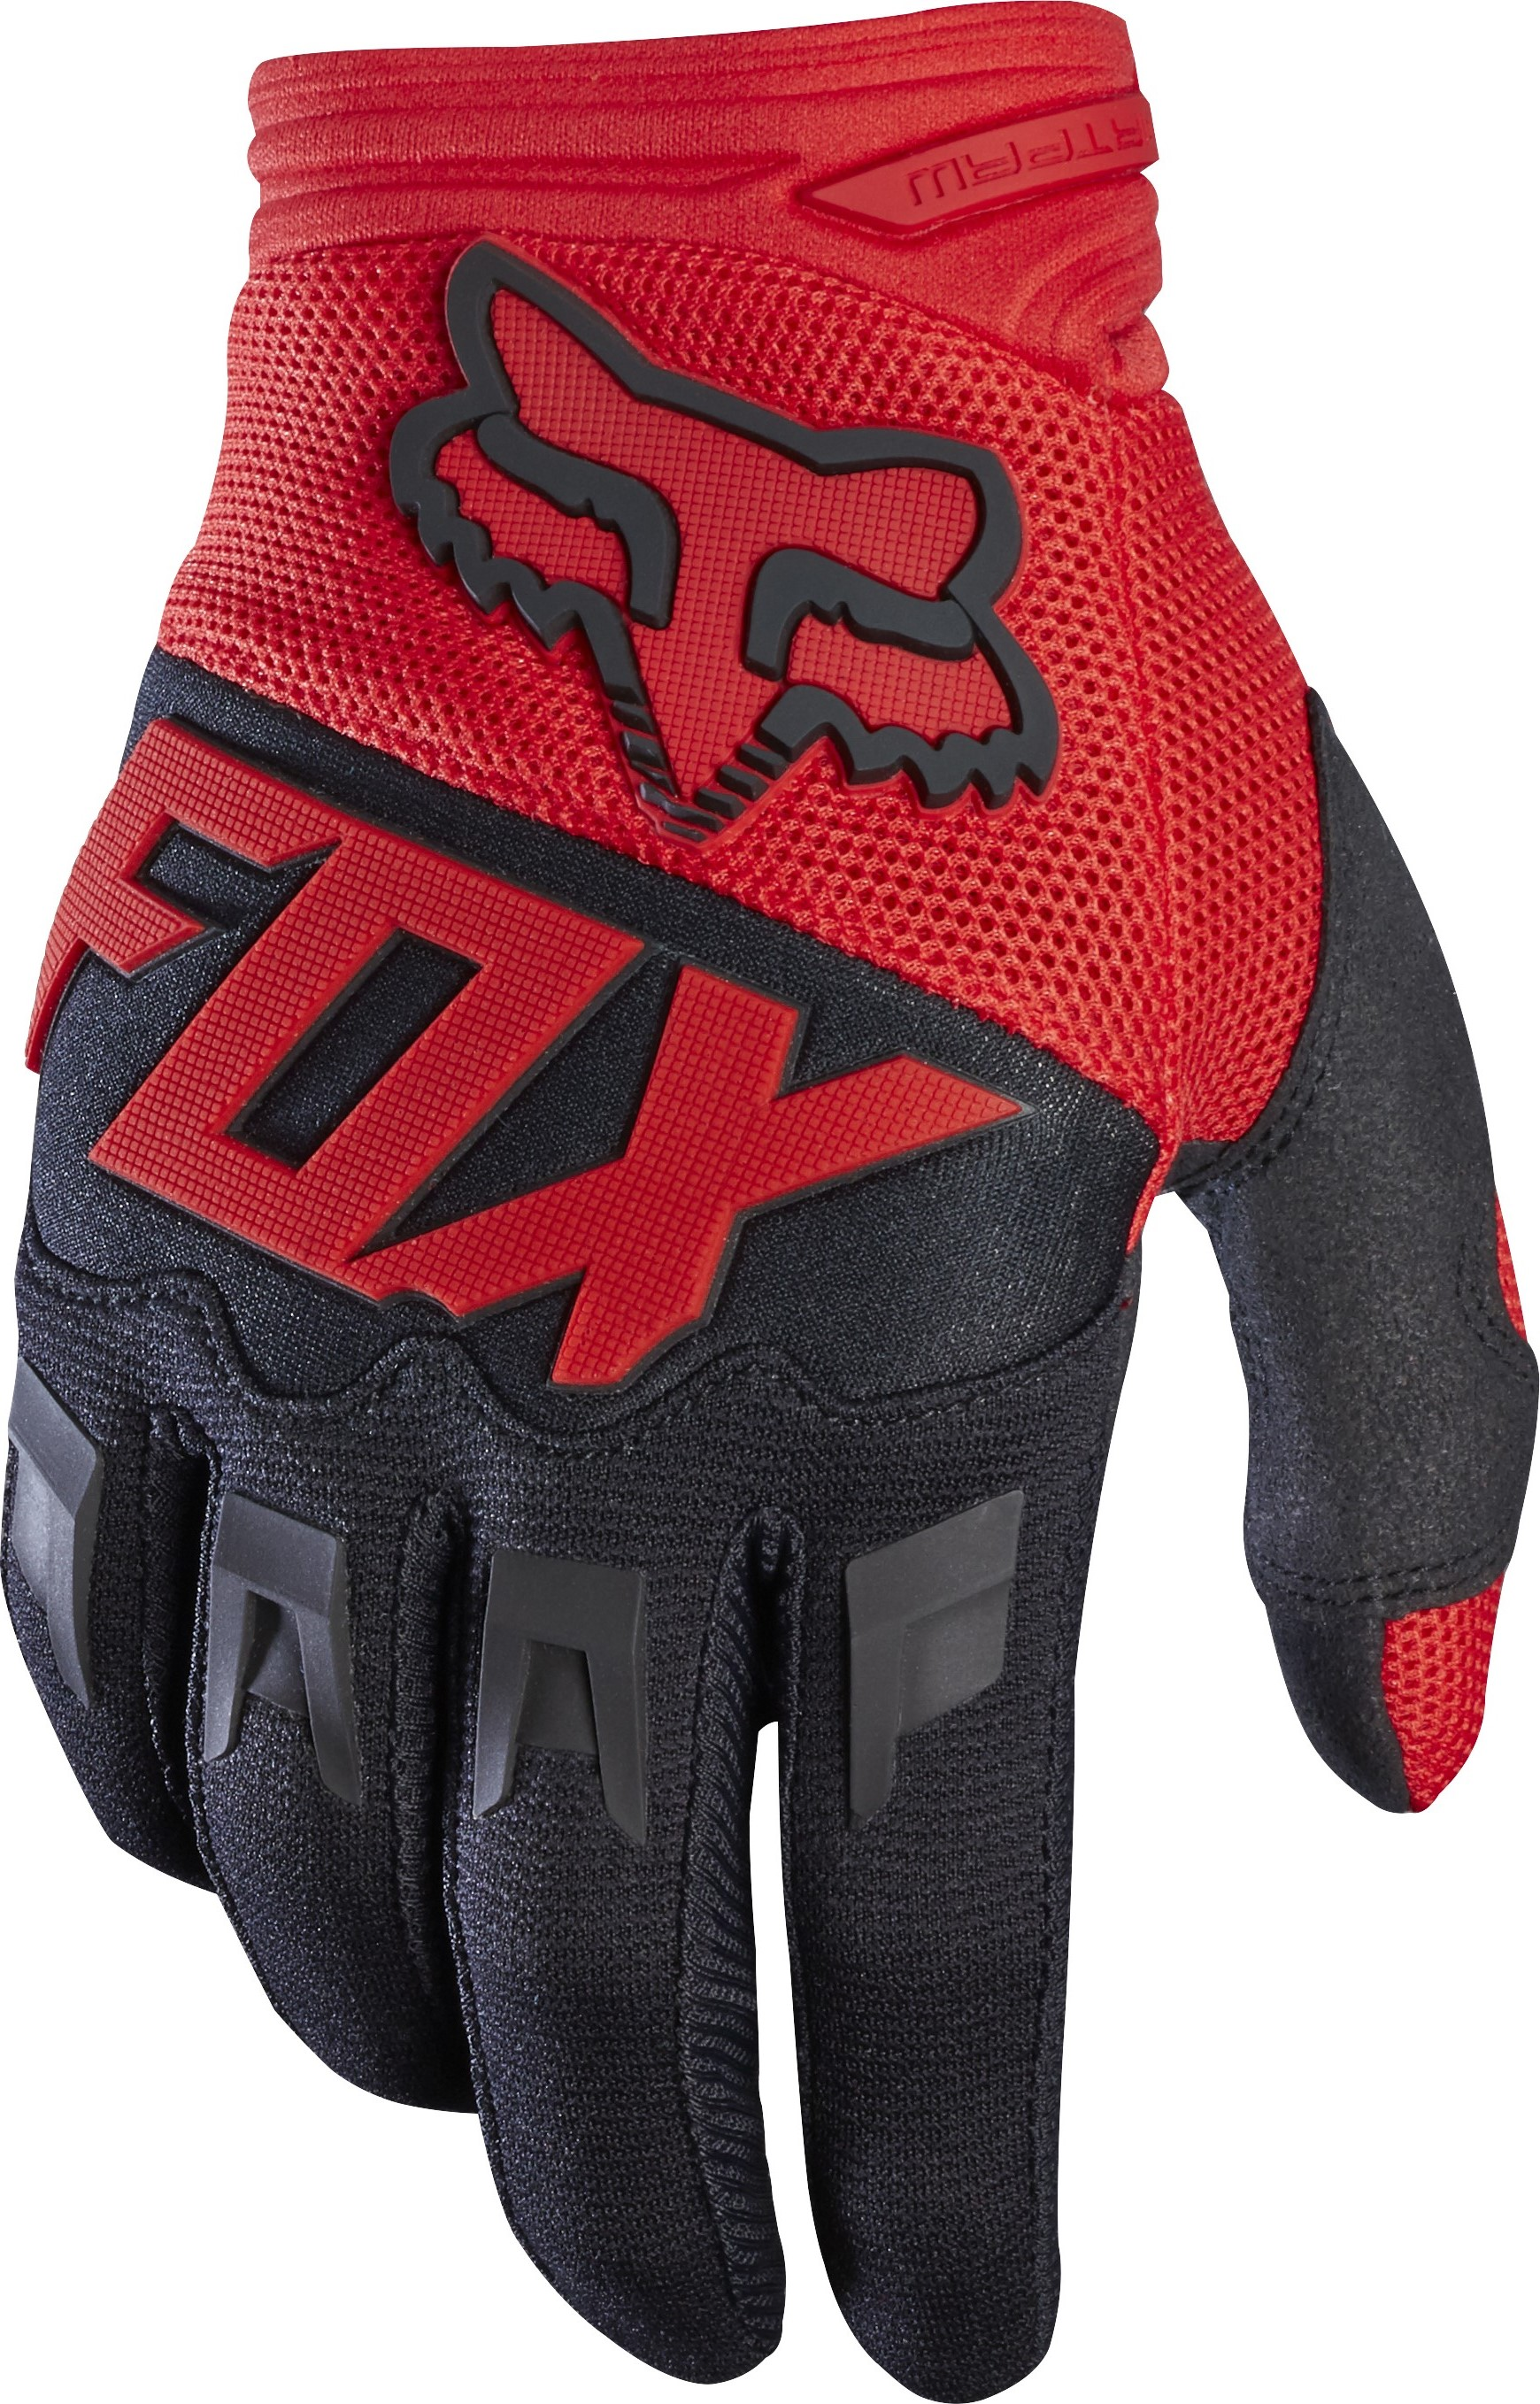 Mens gloves fashion - 2017 Fox Racing Dirtpaw Race Gloves Motocross Dirtbike